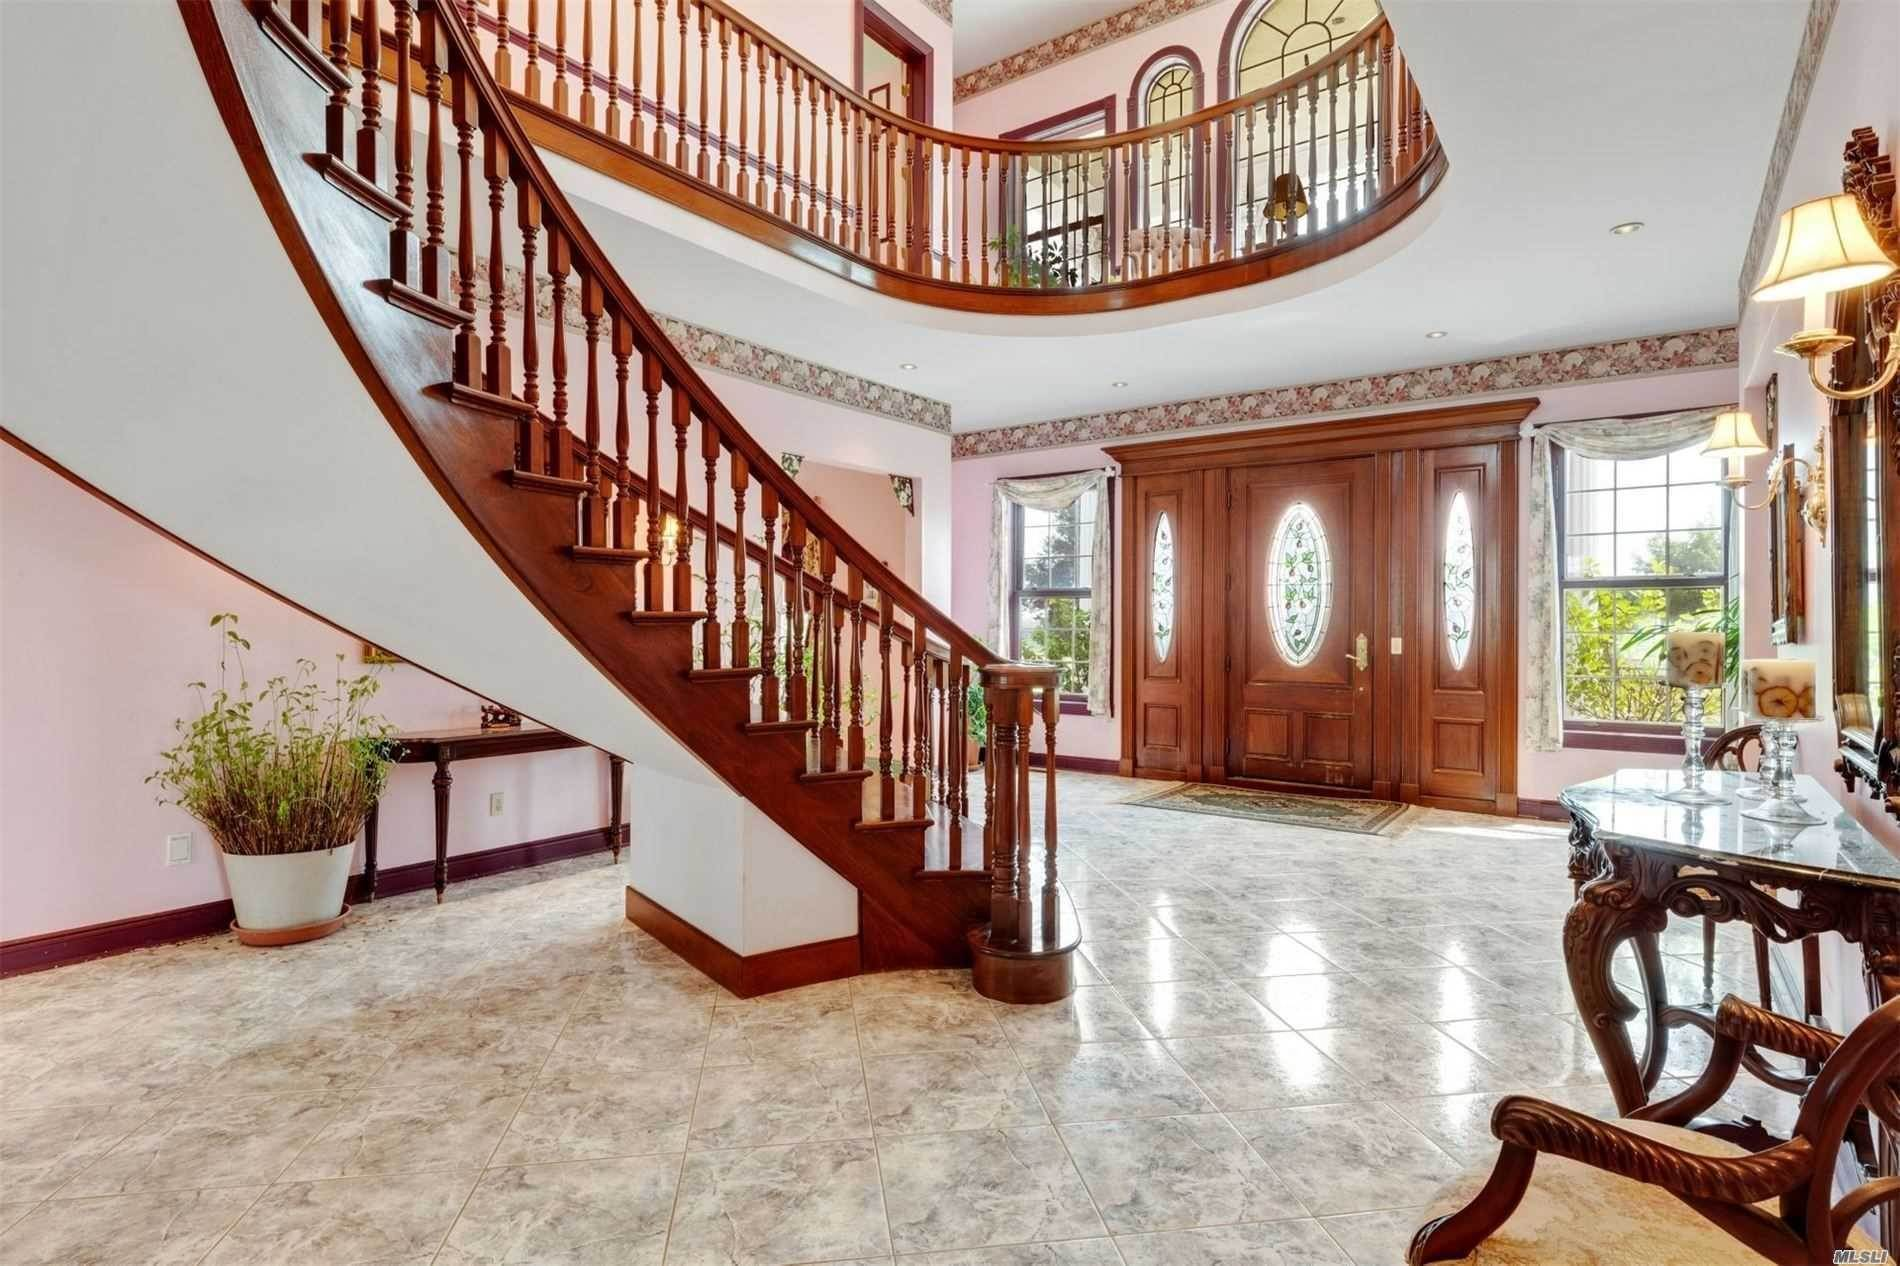 7. Single Family Home for Sale at Manorville,NY,United States Manorville, New York,11949 United States